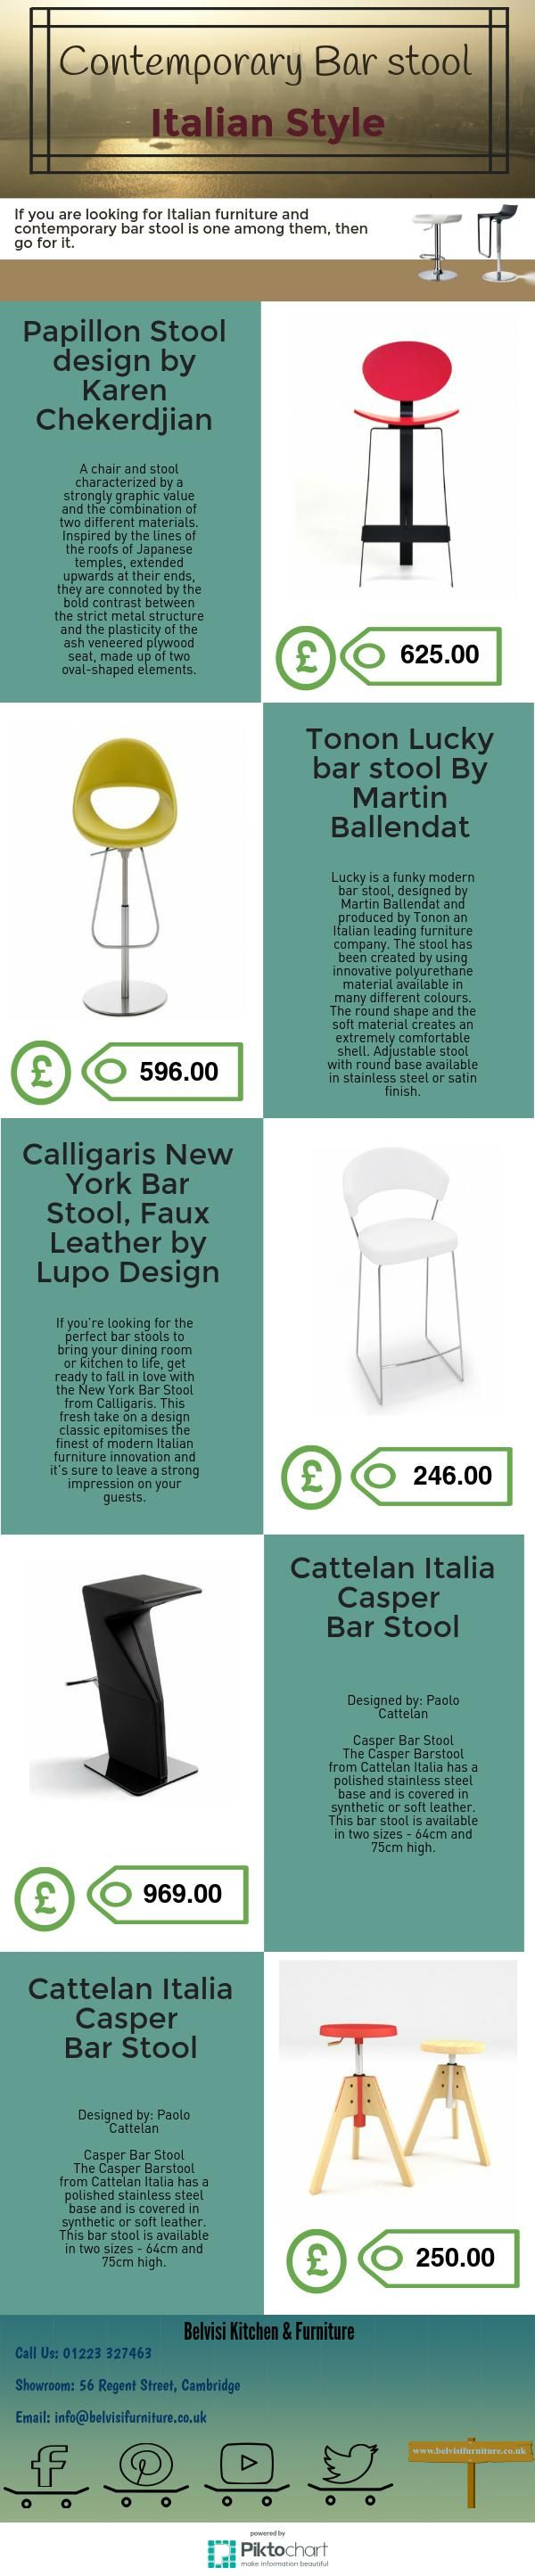 Belvisi Furniture Online Store Brings For Modern And Contemporary Kitchen  Dining Bar Stools For You. Browse Our Wide Collection Of Italian Products  Here.